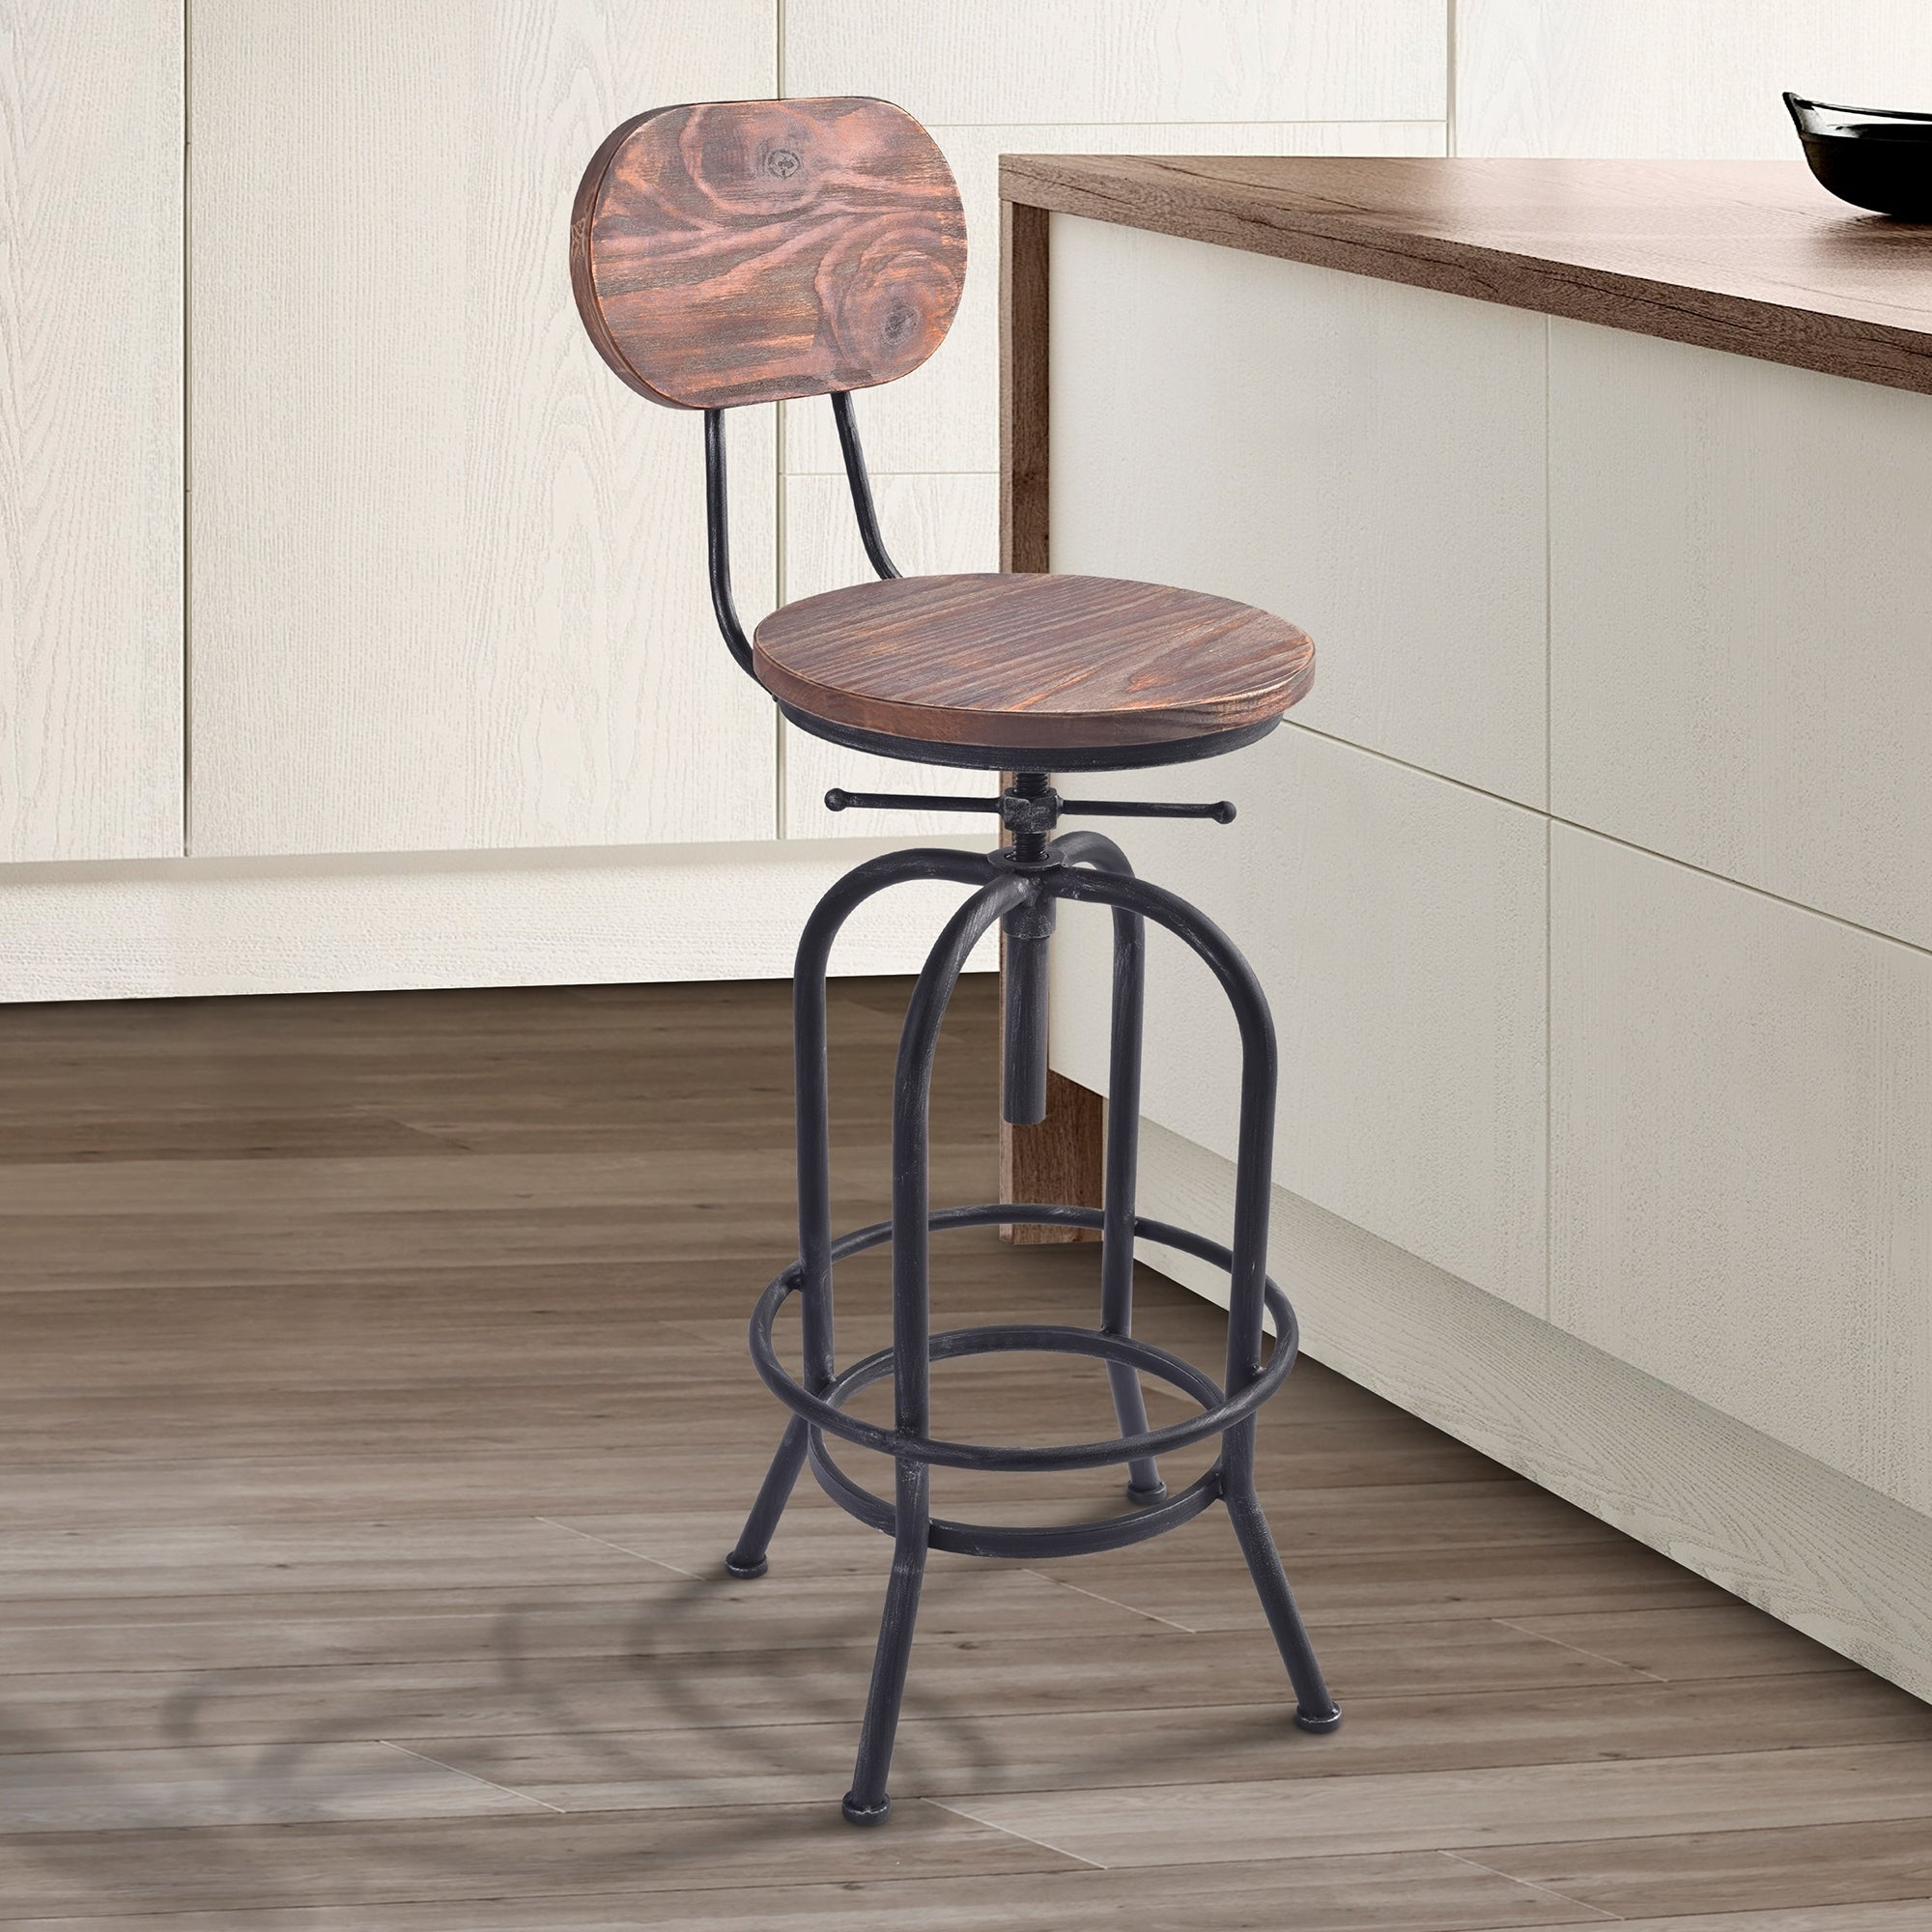 Shop Black Friday Deals On Adele Industrial Adjustable Barstool In Silver Brushed Gray With Rustic Pine Wood Seat And Back Bar Height Counter Height On Sale Overstock 18262753